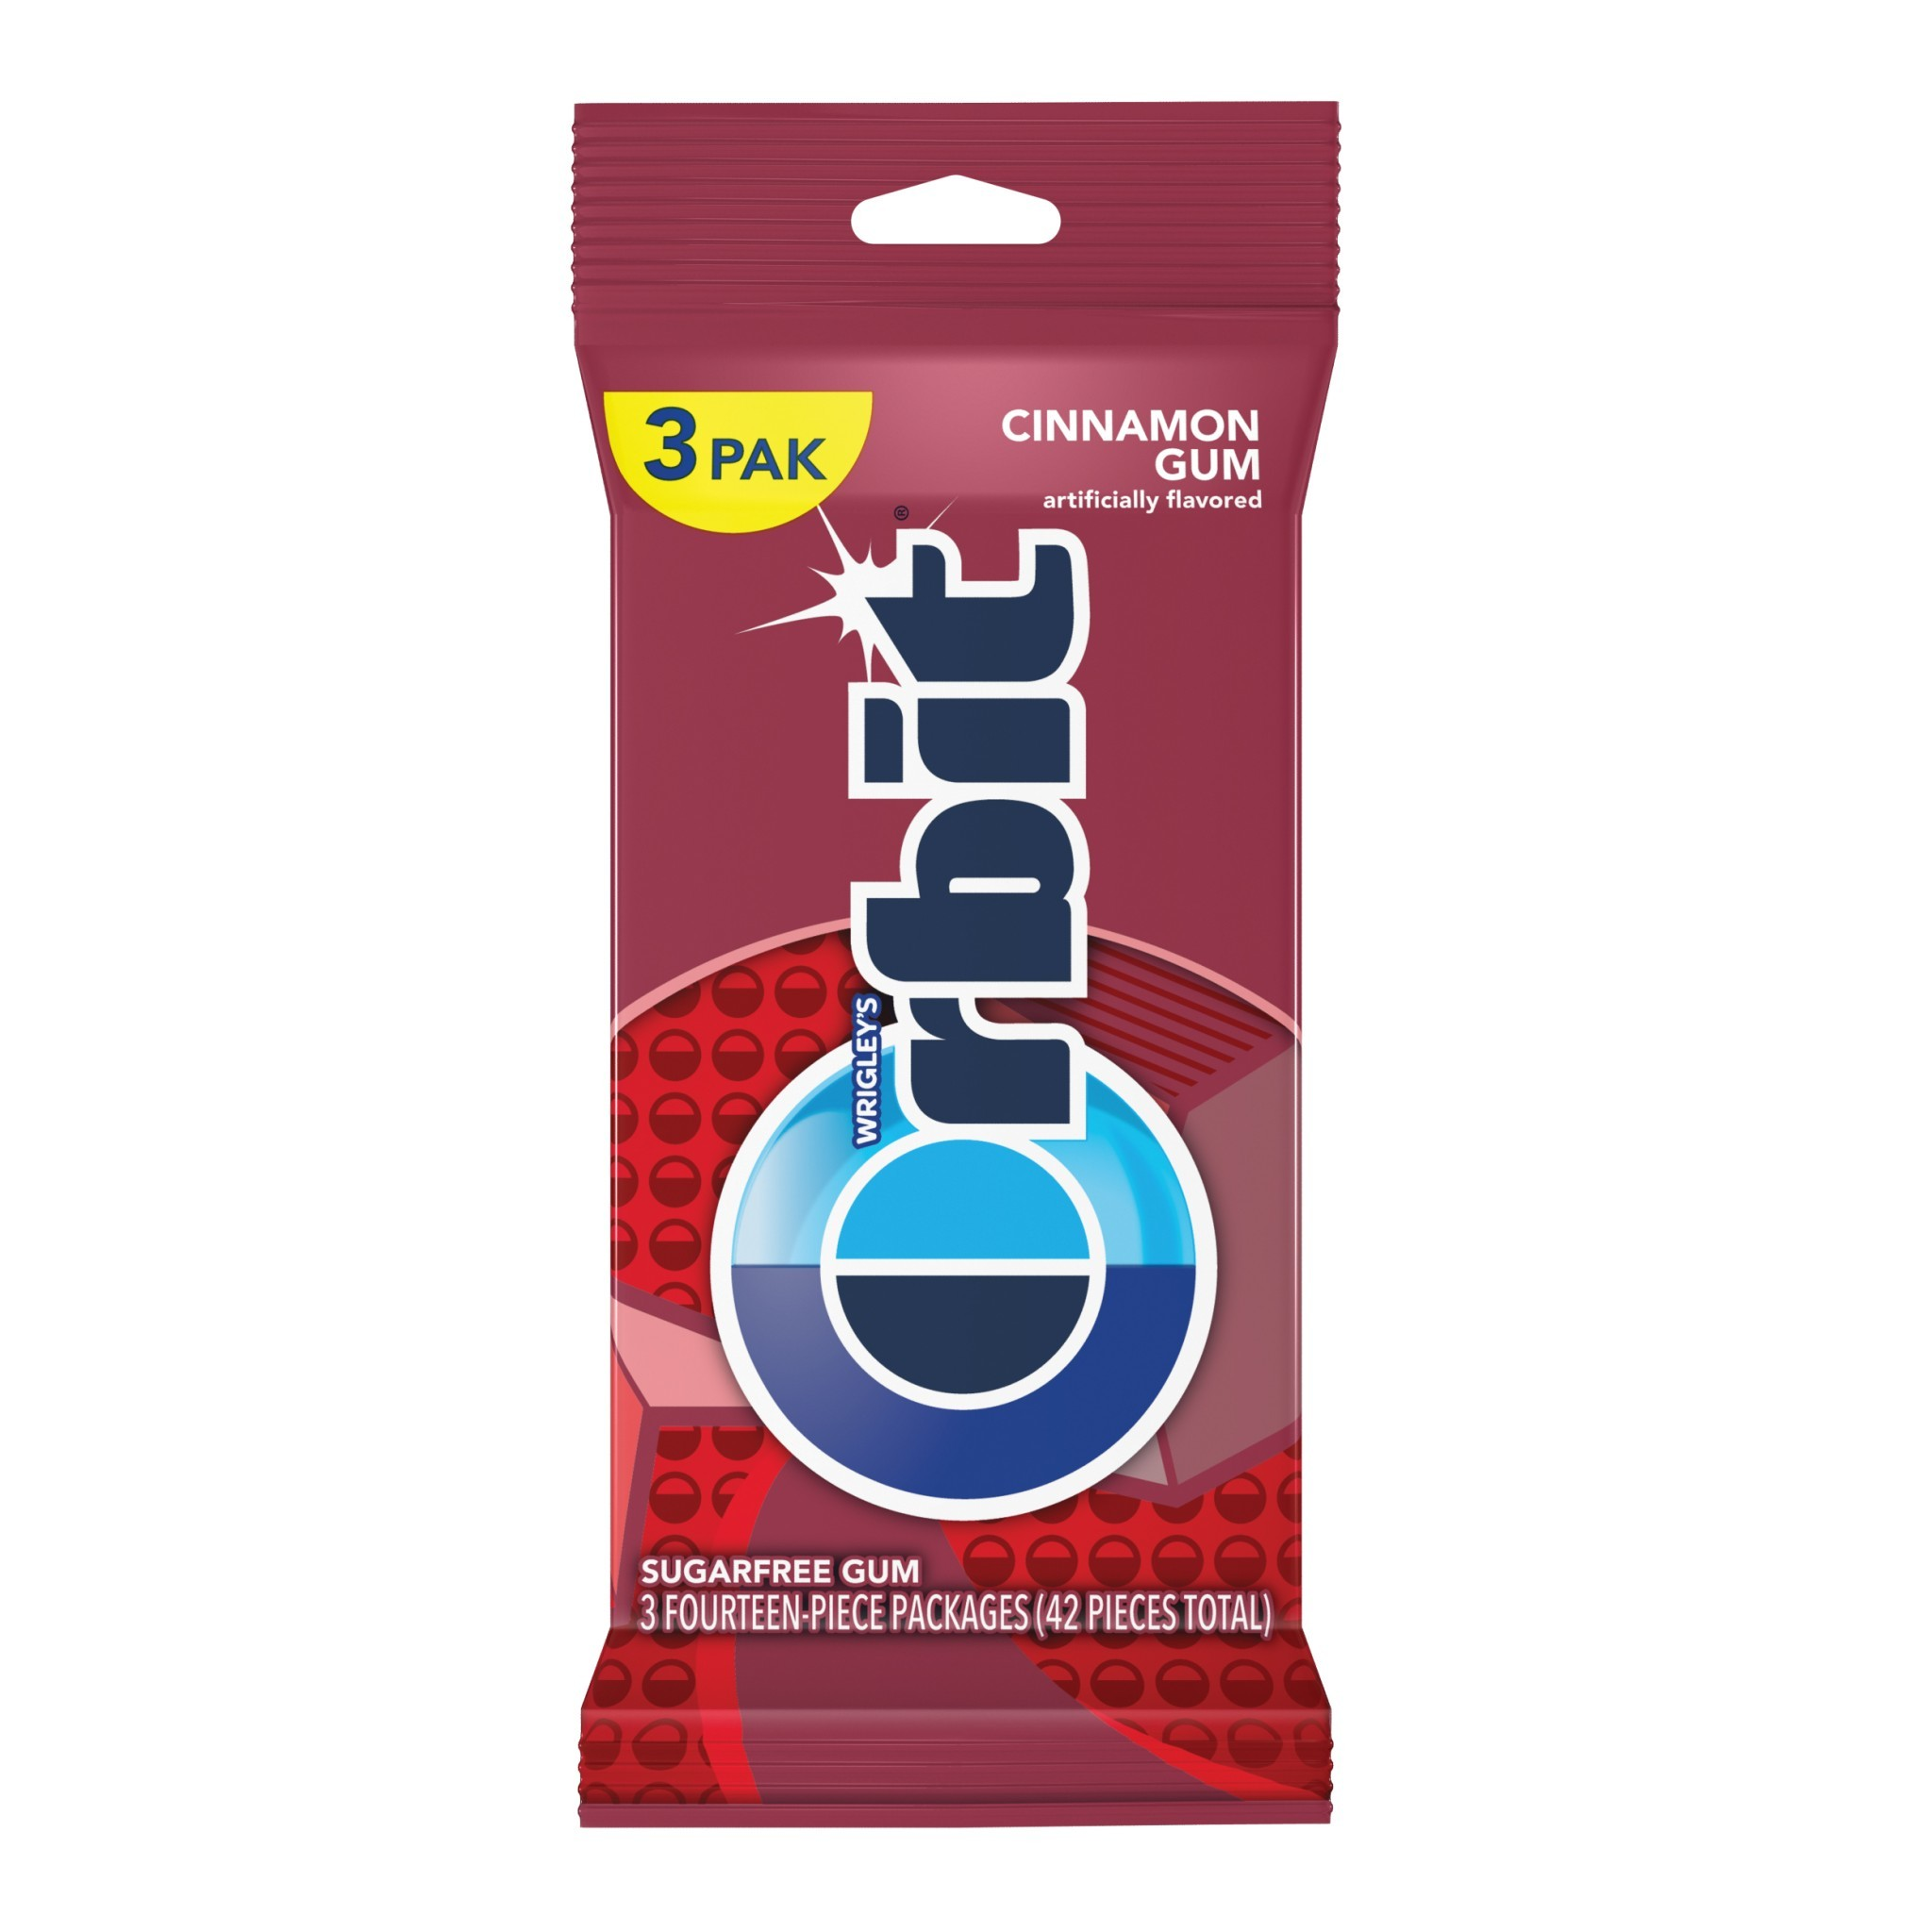 Orbit Cinnamon Sugarfree Gum, multipack (3 packs total)